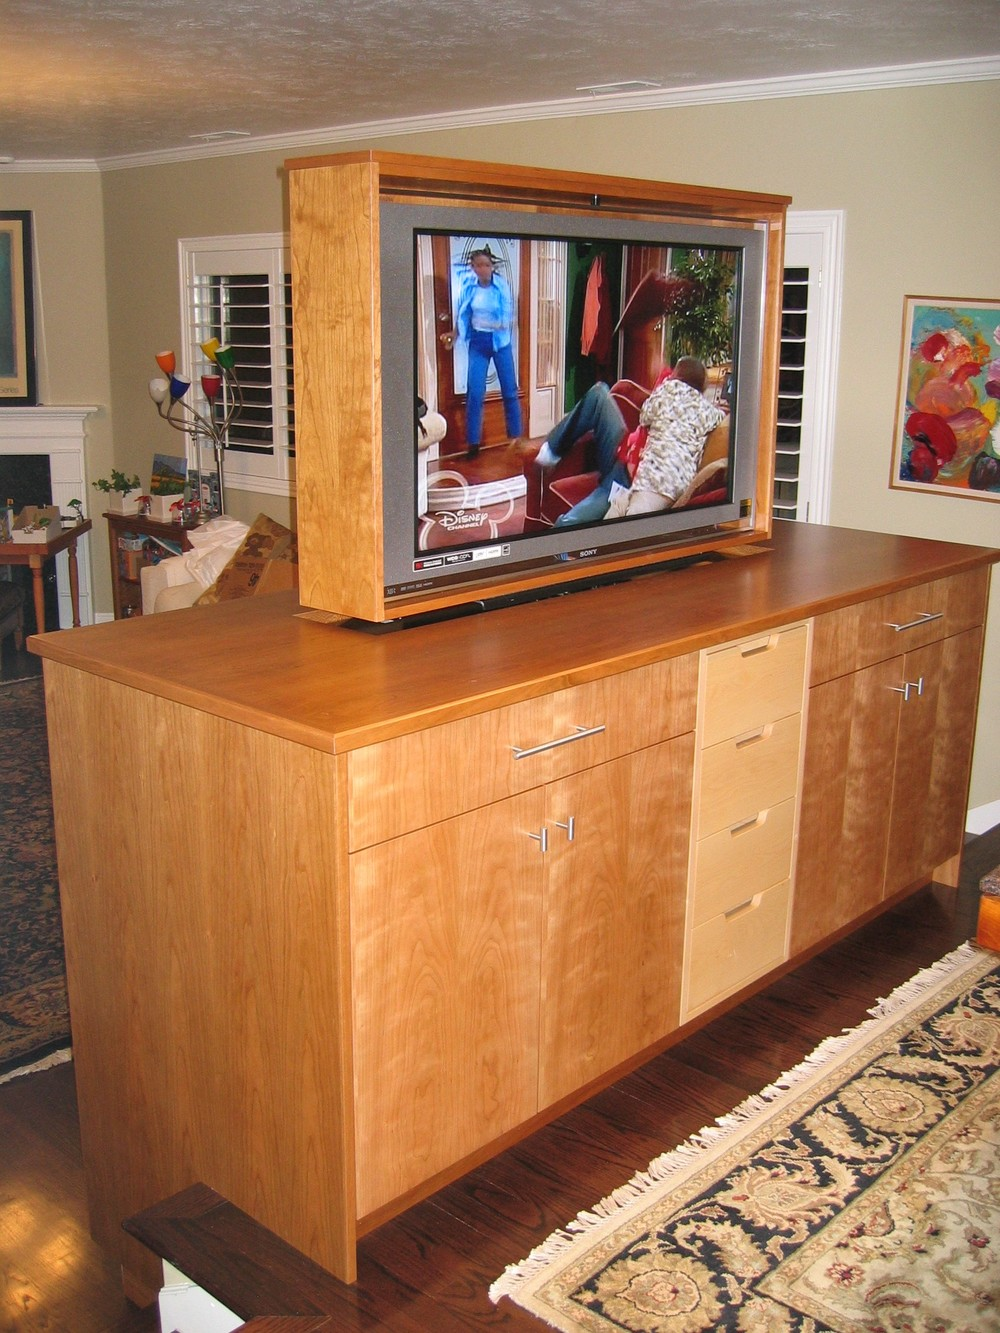 Cherry-maple pop-up, pivot TV cabinet